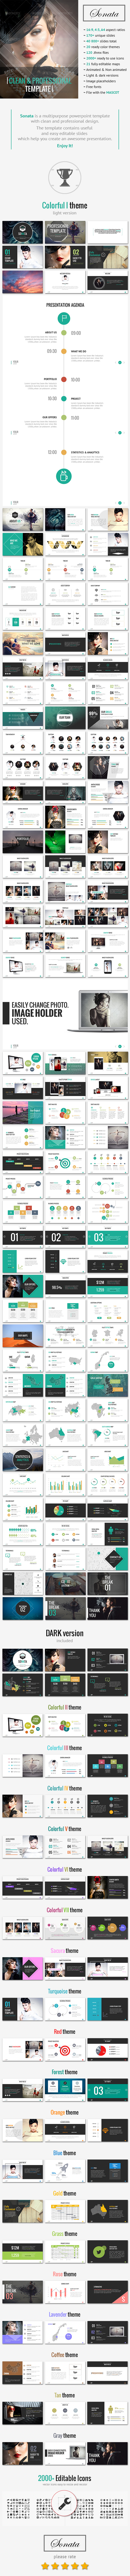 SONATA Flexible and Easy Tunable Template - PowerPoint Templates Presentation Templates